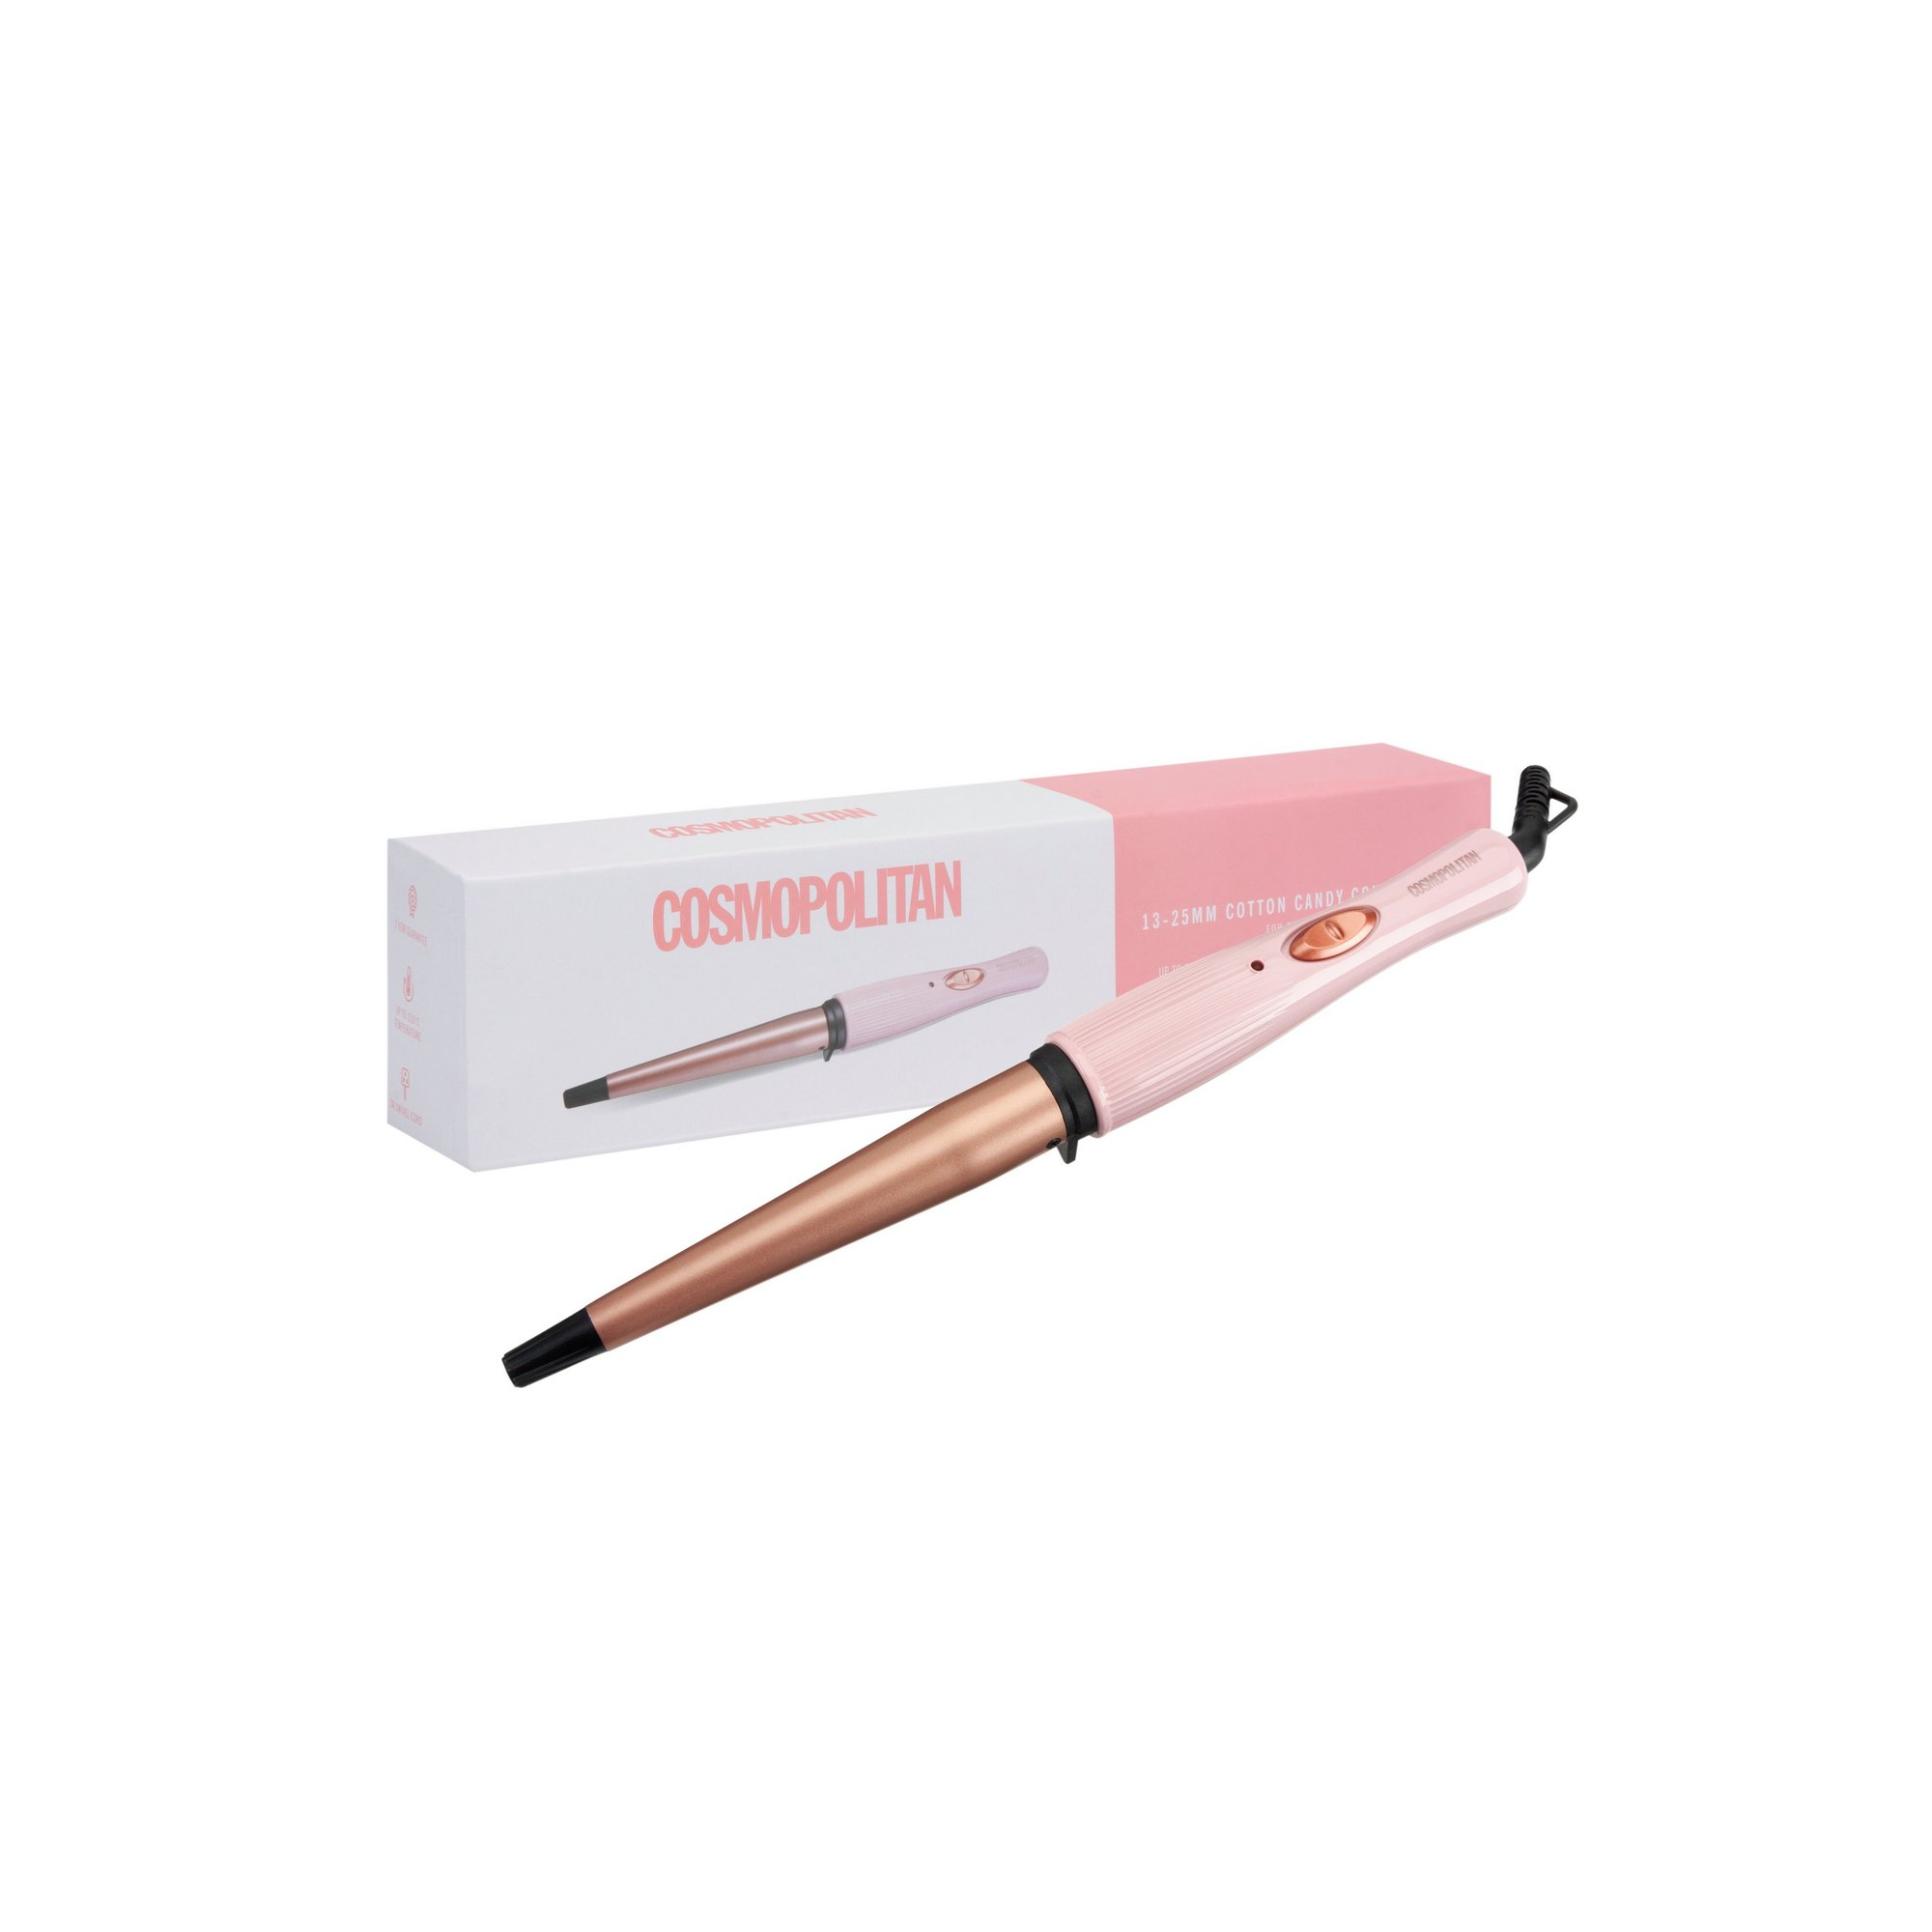 Image of Cosmopolitan Cotton Candy Conical Wand